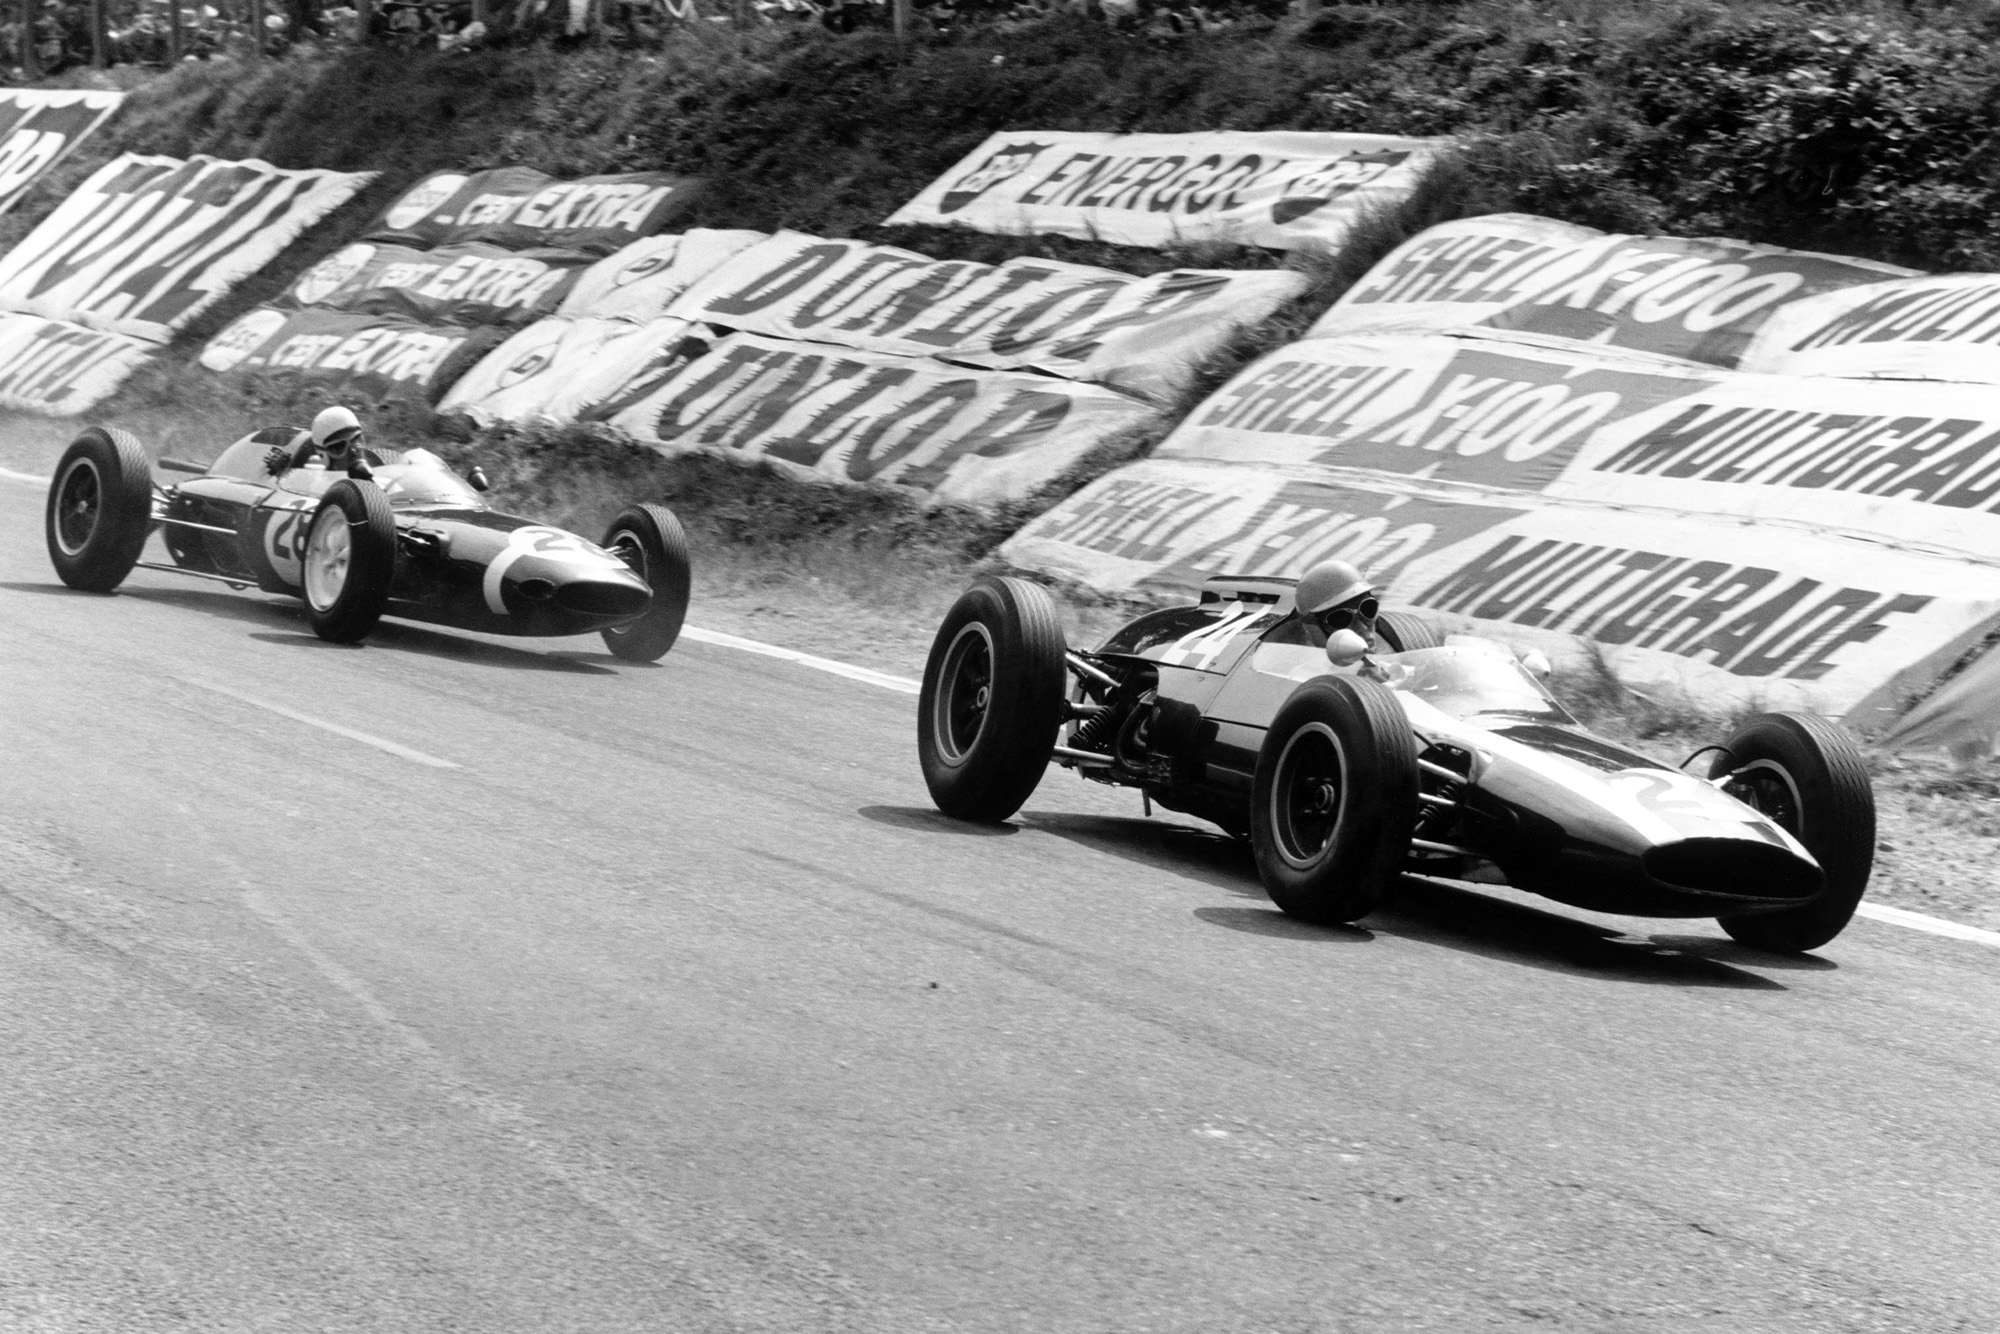 Maggs and Trintignant dice at the hairpin